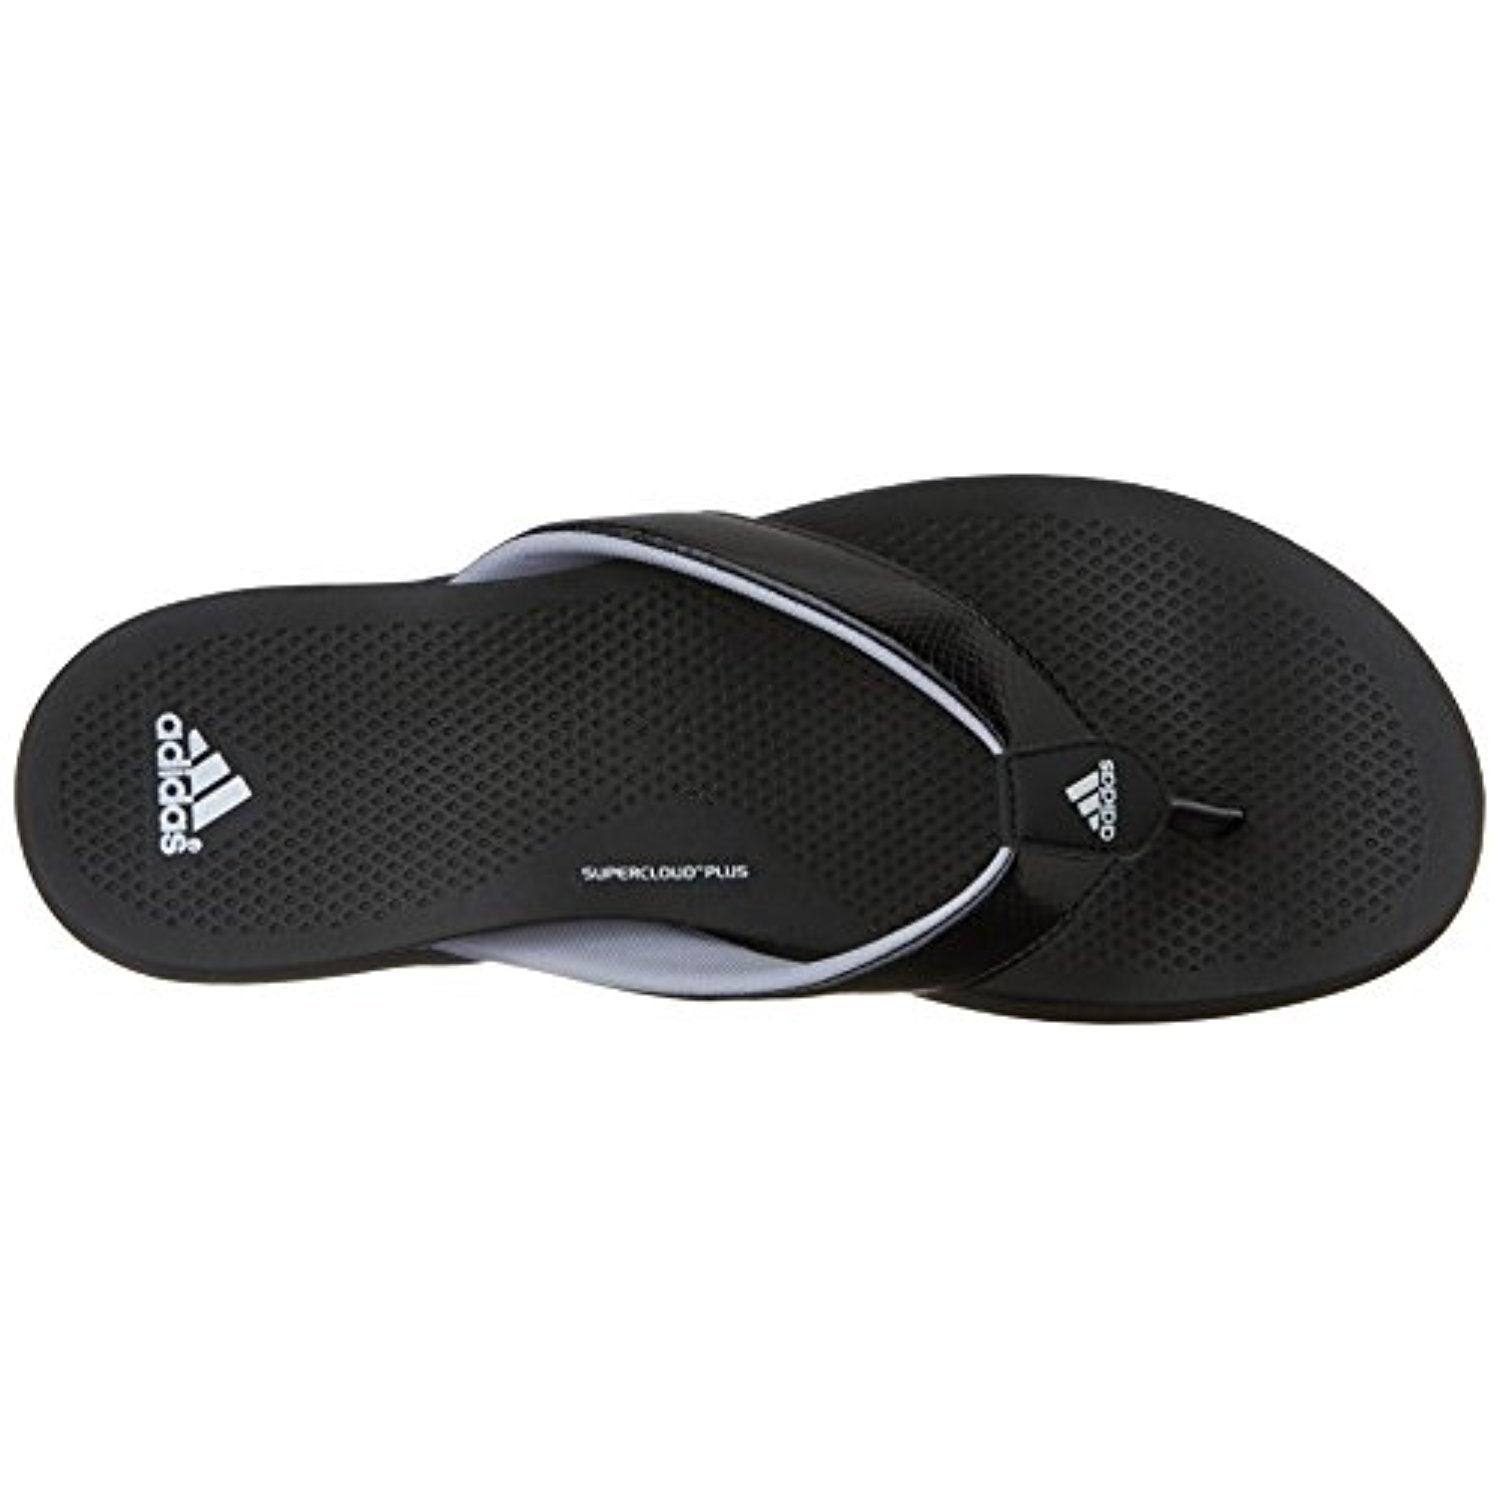 9459edc51b5a Shop adidas Performance Women s Supercloud Plus Thong W Athletic Sandal